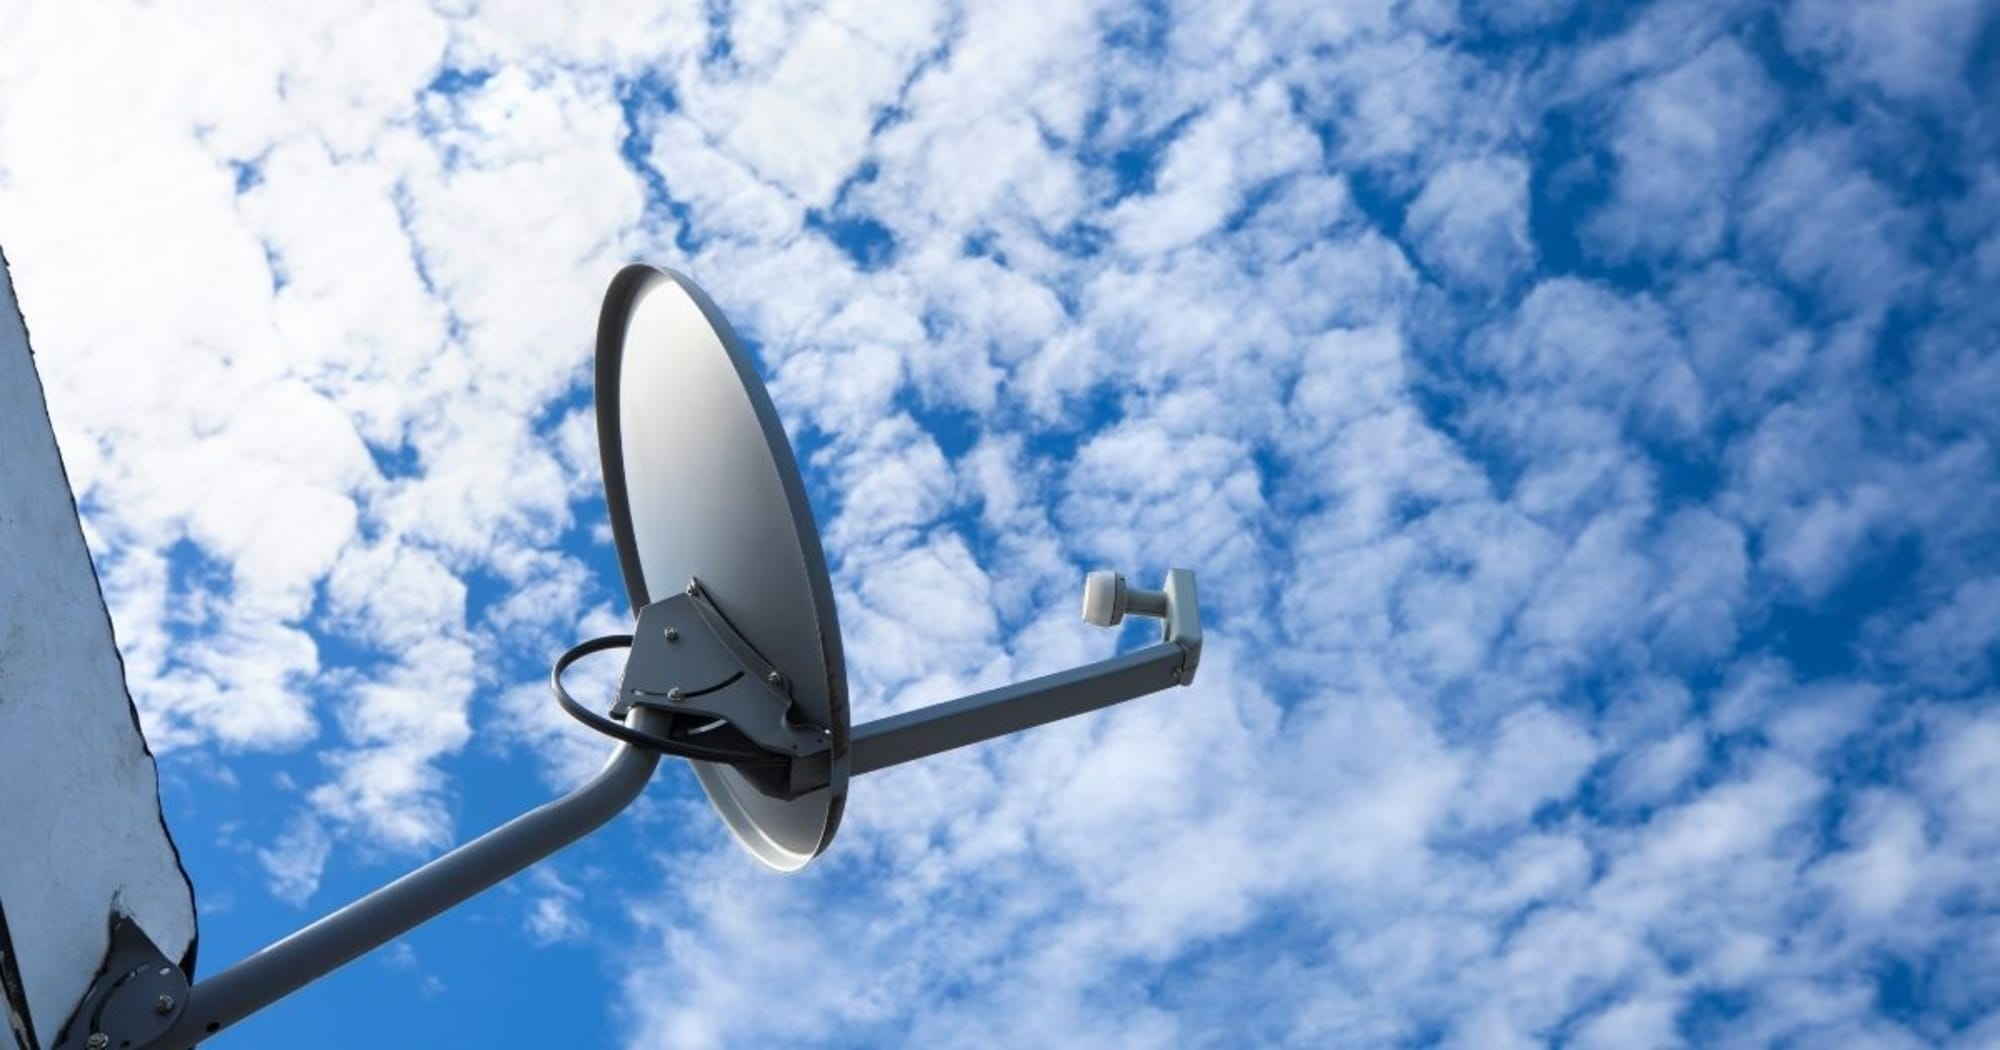 Satellite Broadband Internet to have greater Financial Services especially in Rural Areas